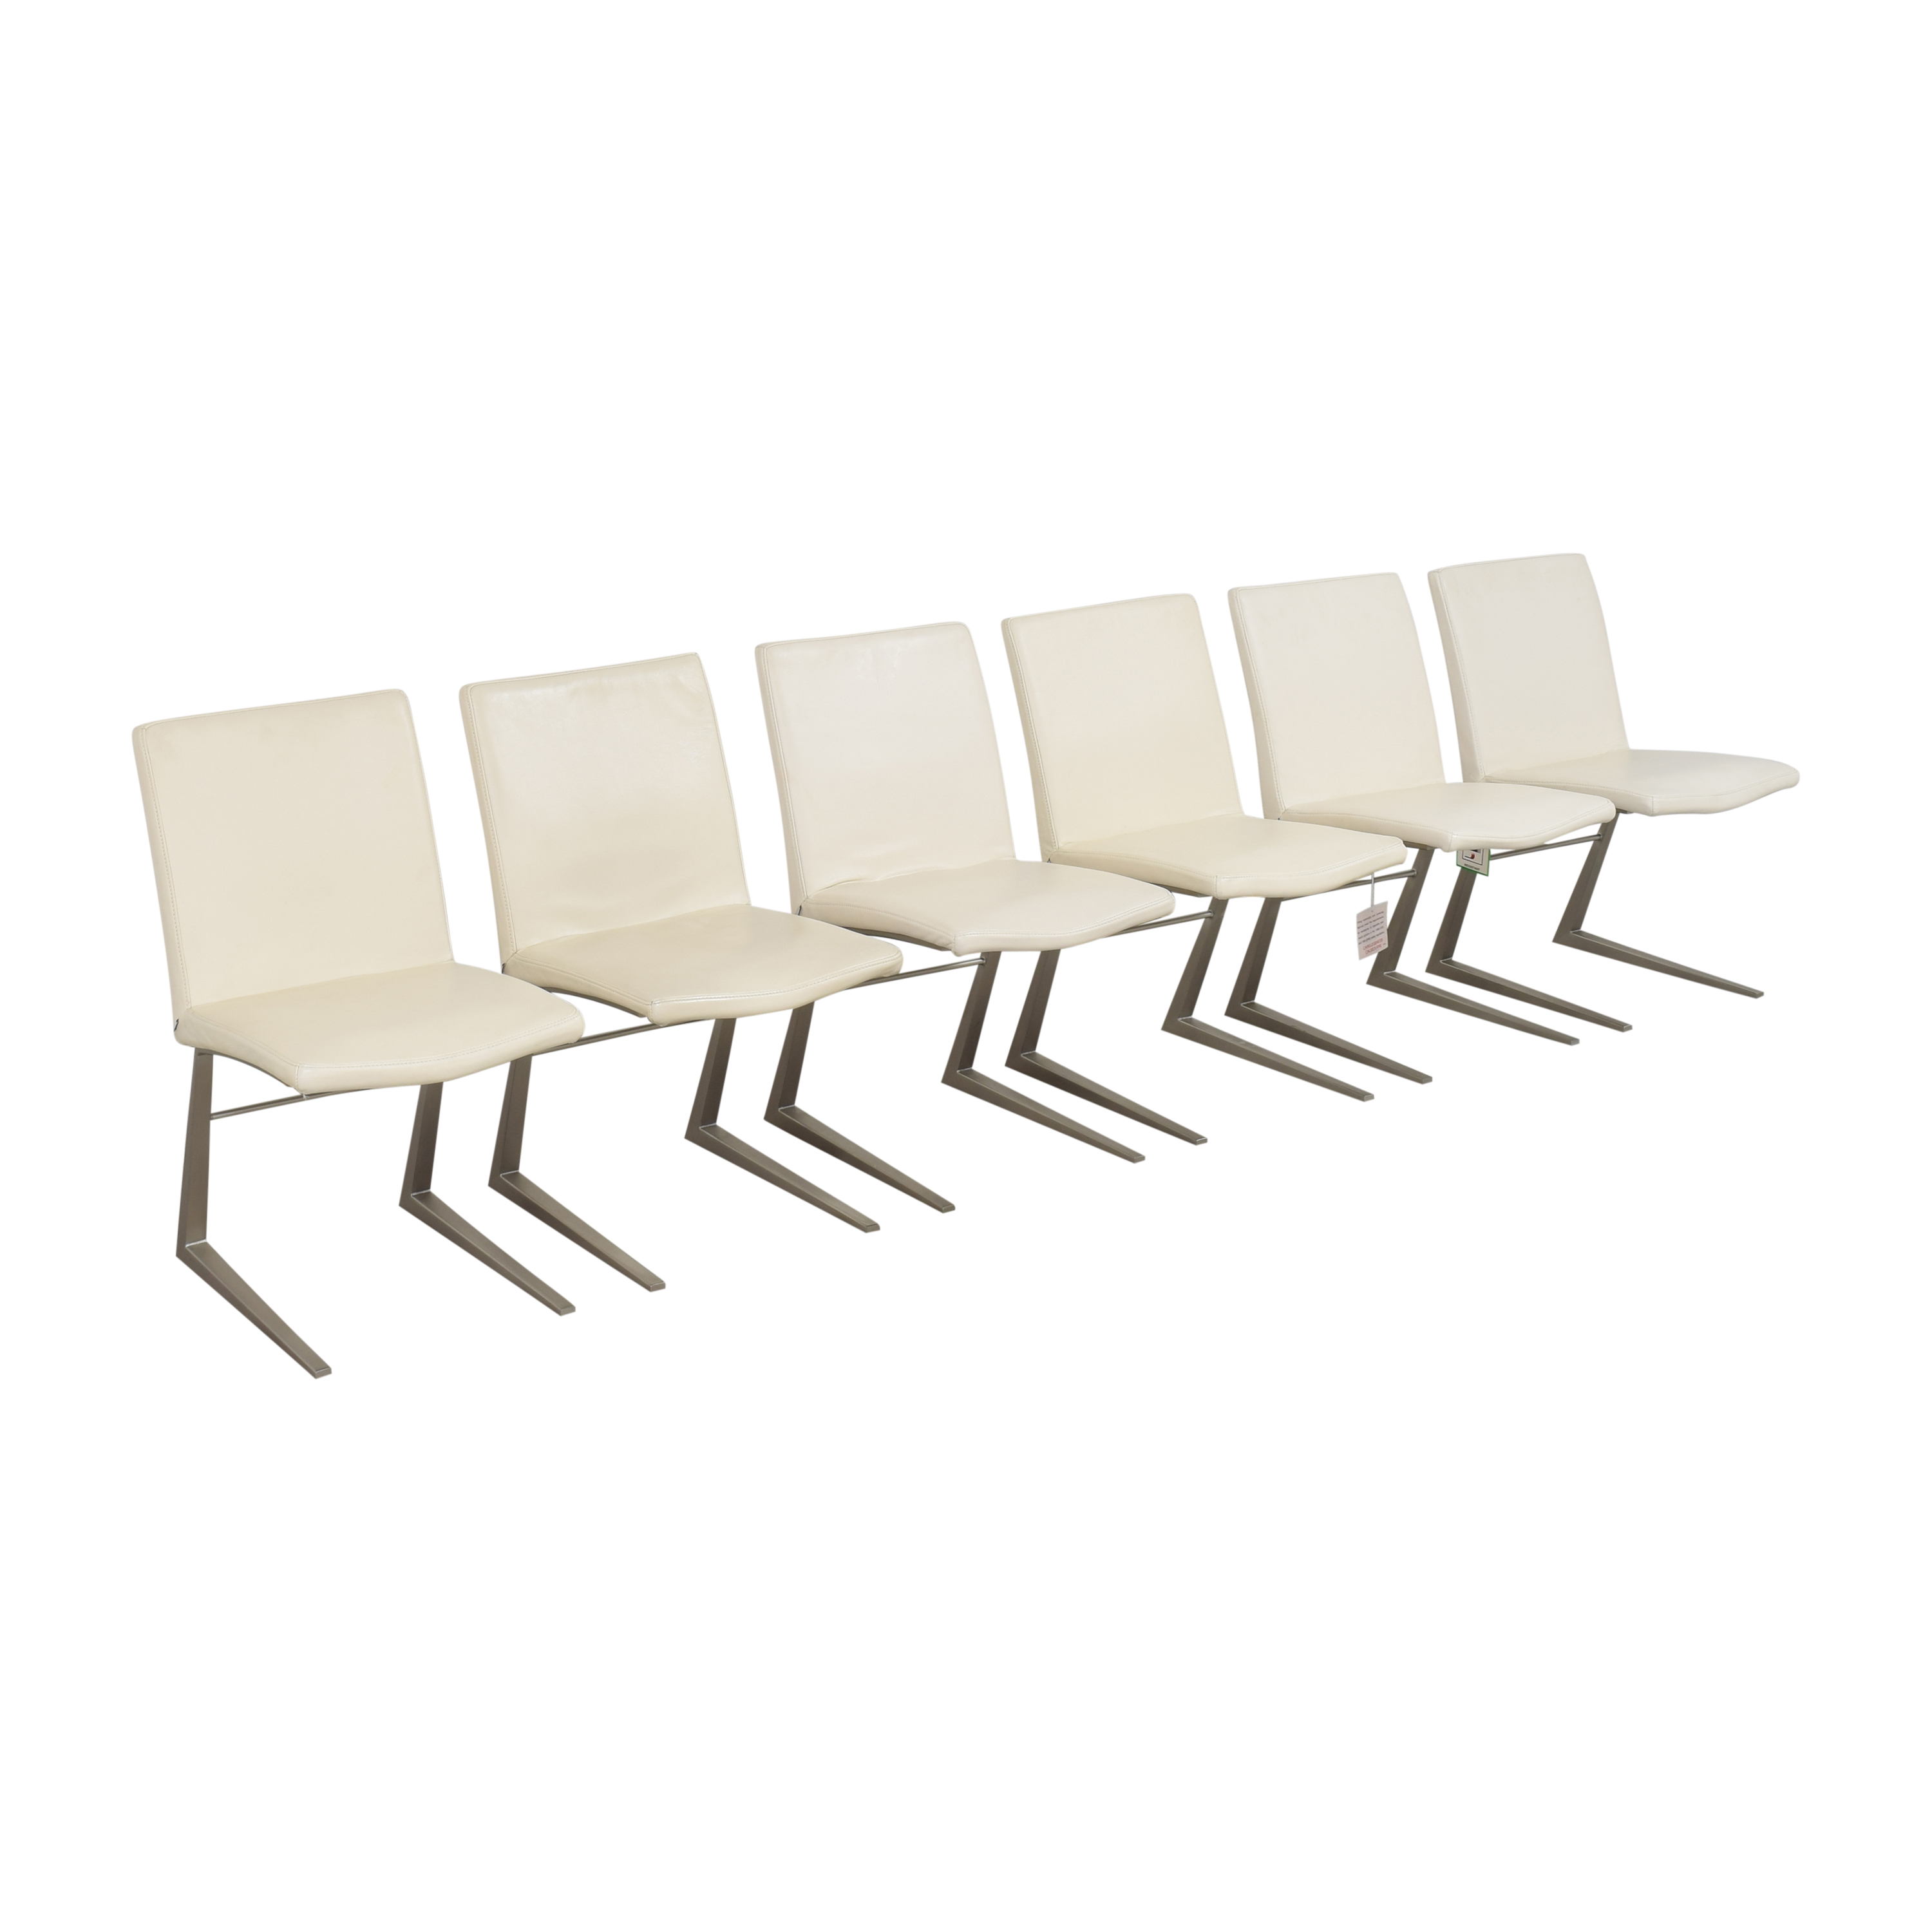 BoConcept Mariposa Deluxe Chairs / Dining Chairs